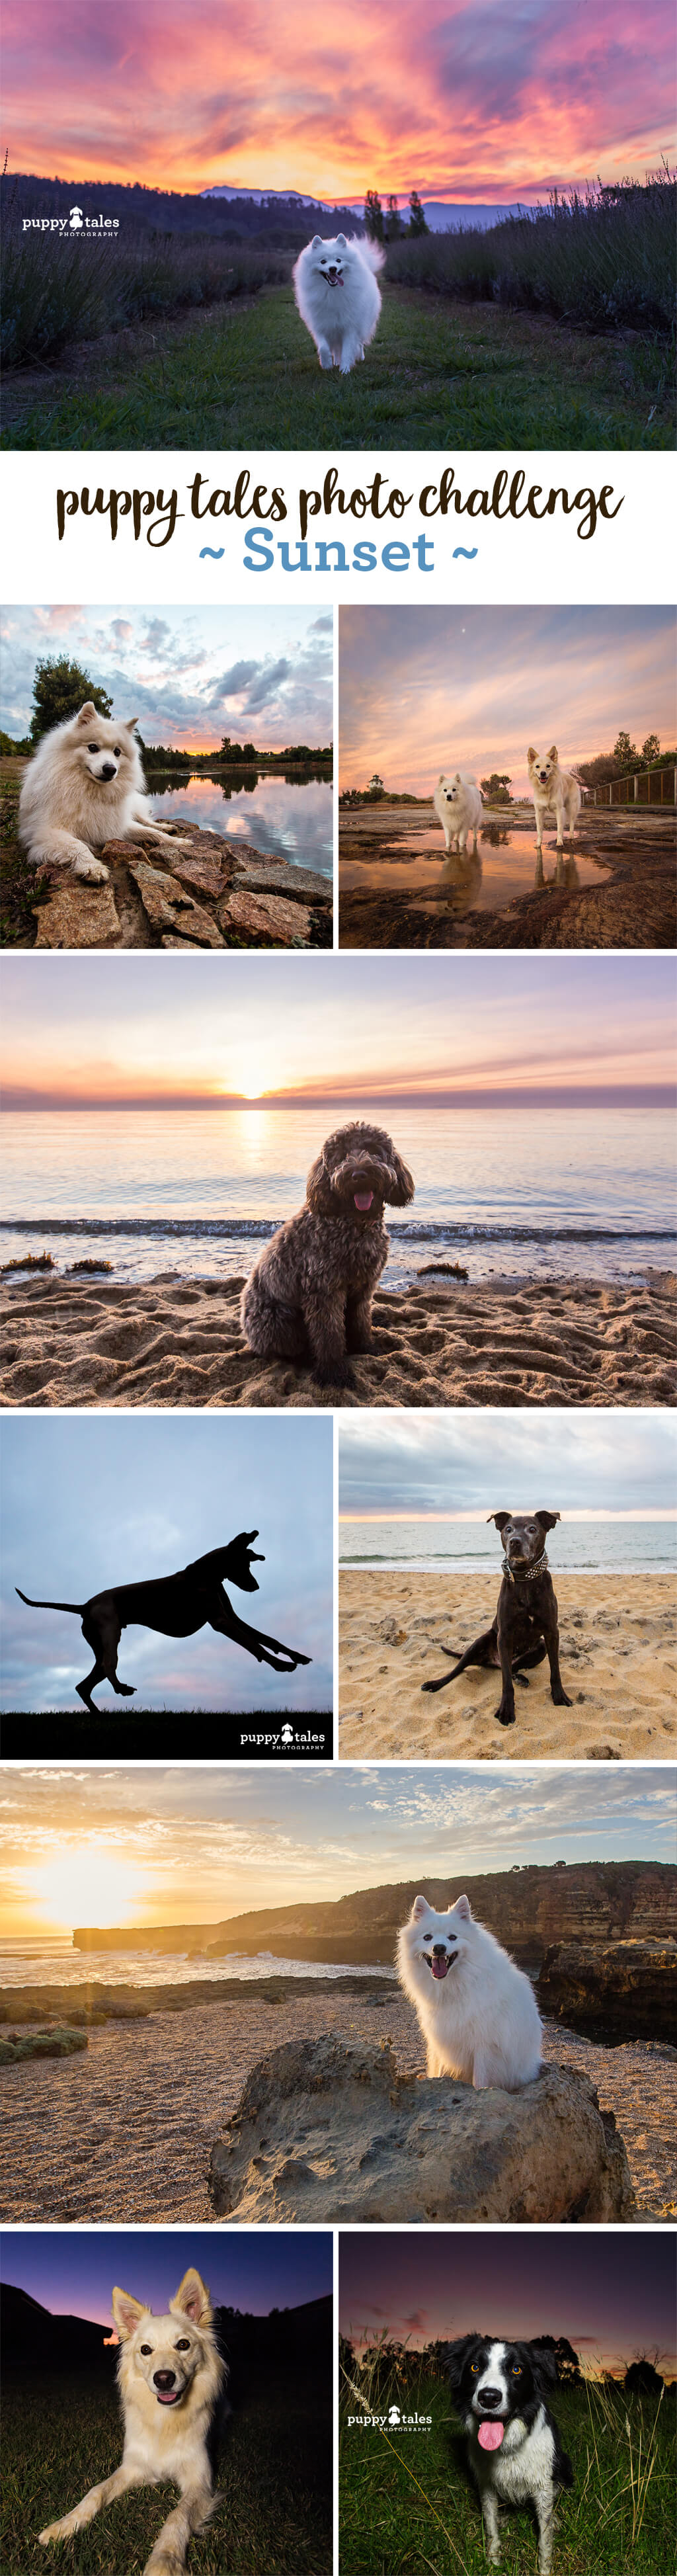 Puppy Tales Photo Challenge ~ Sunset